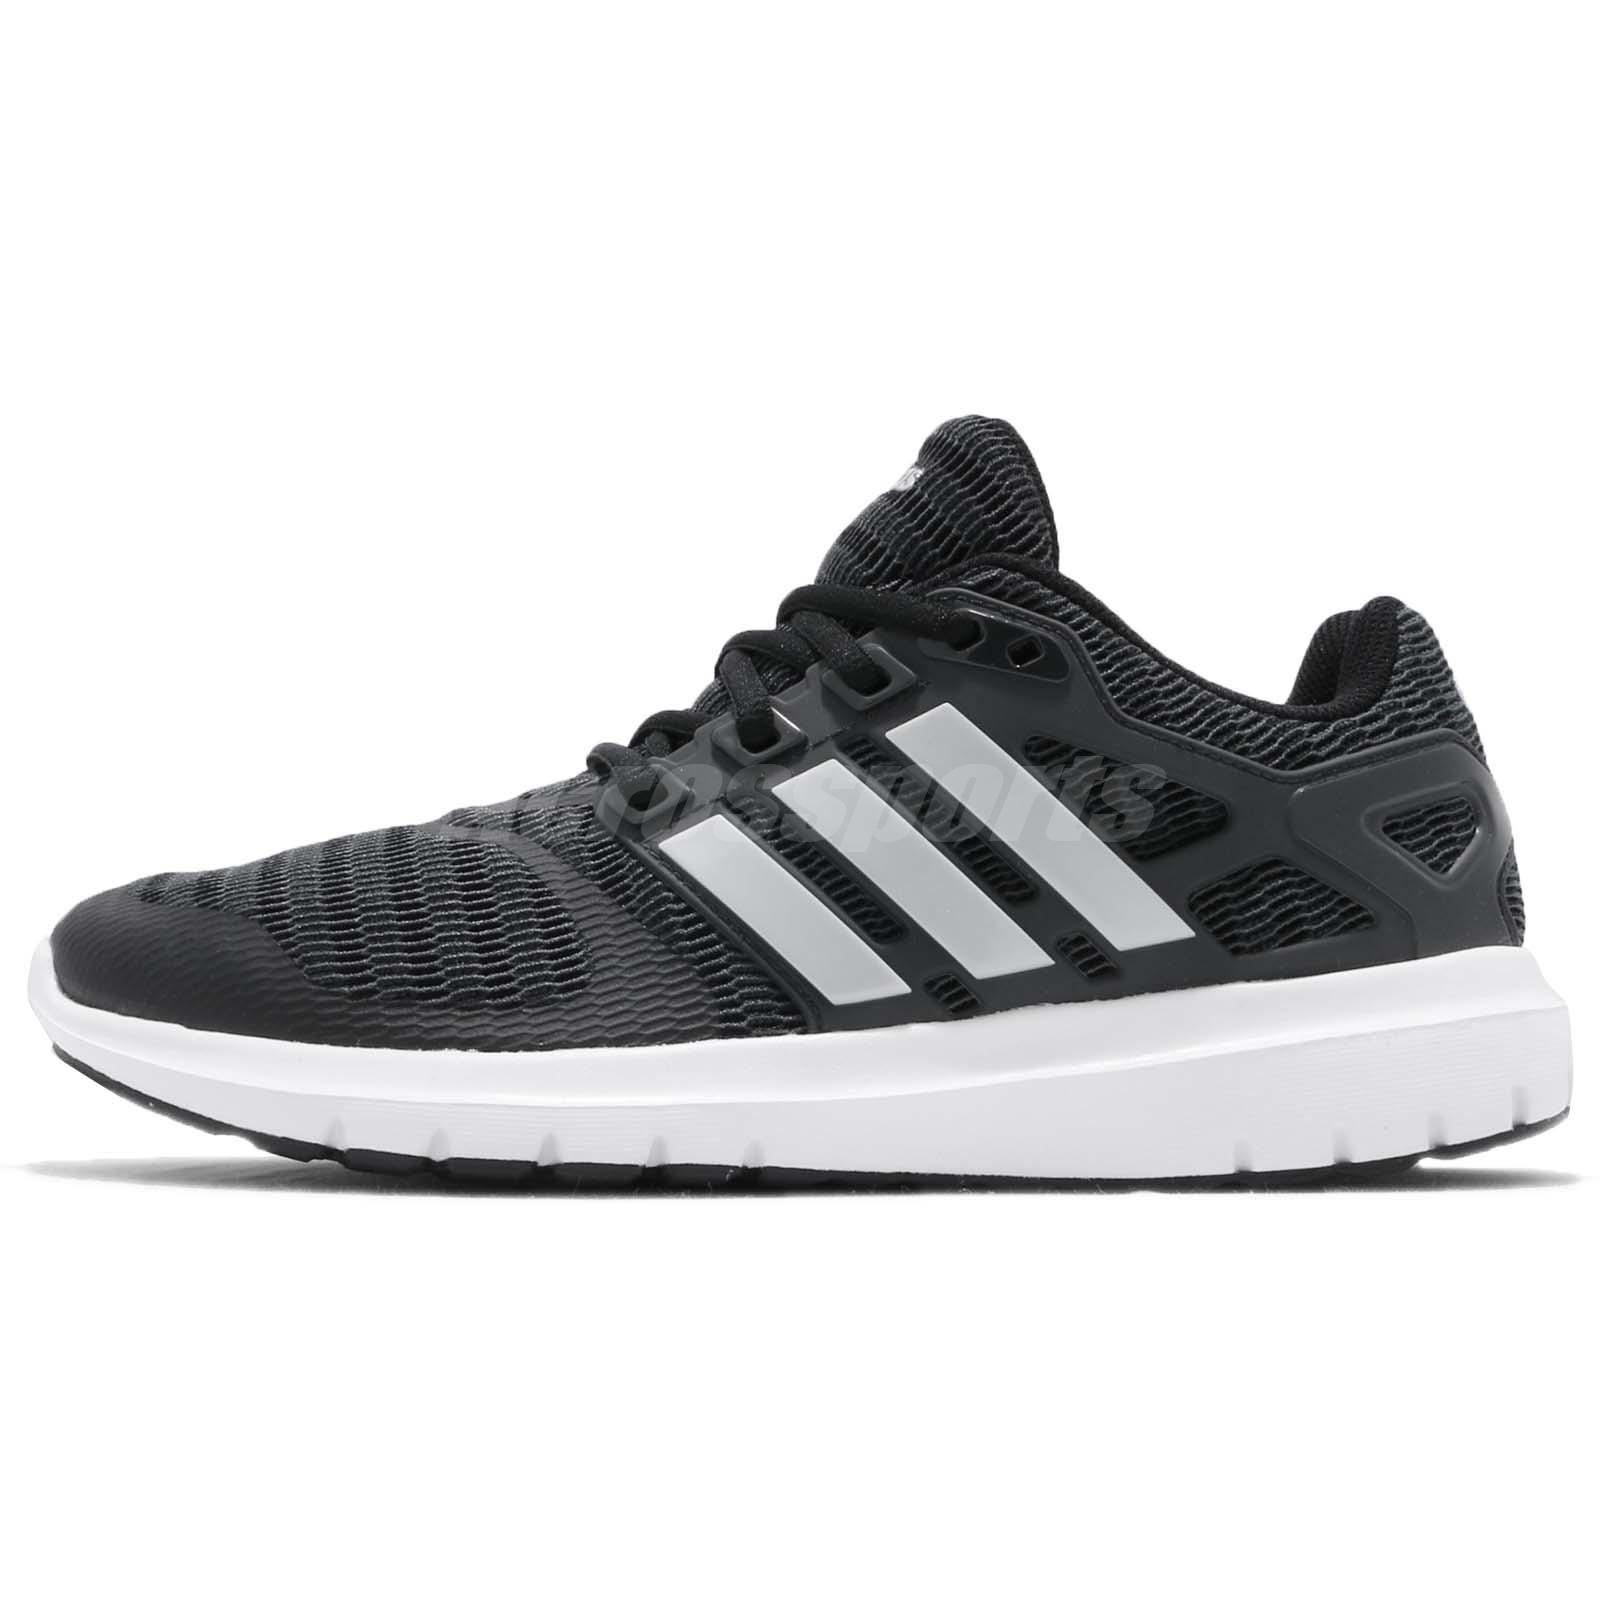 3a997c875f adidas Energy Cloud V Black Silver White Women Running Shoes Sneakers B44846